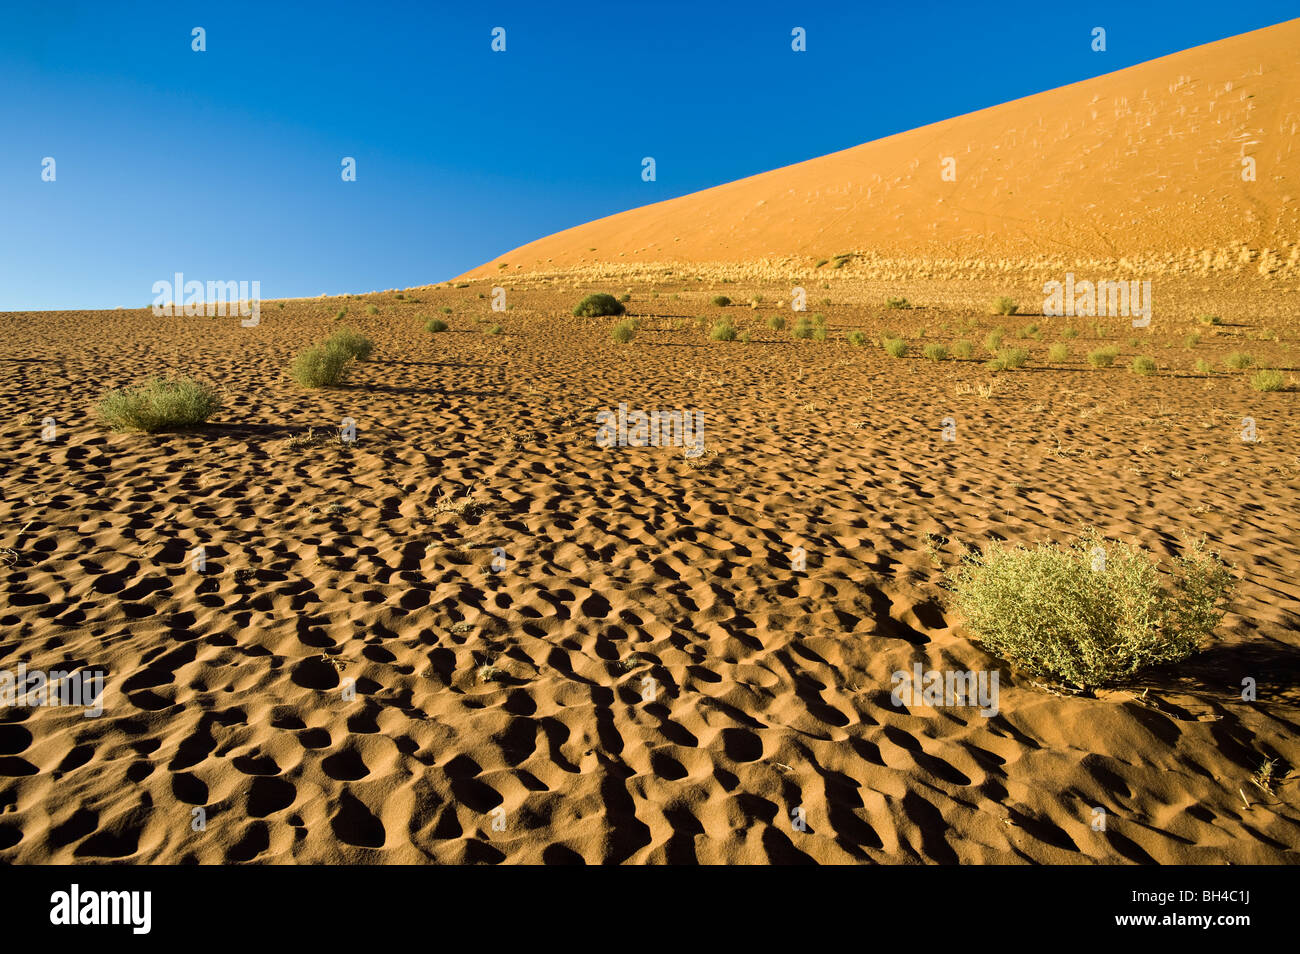 La Namibie namib desert deadvlei SOSSUSVLEI dunes sand early morning light ambiance ambiance ambiance dunes de sable Photo Stock